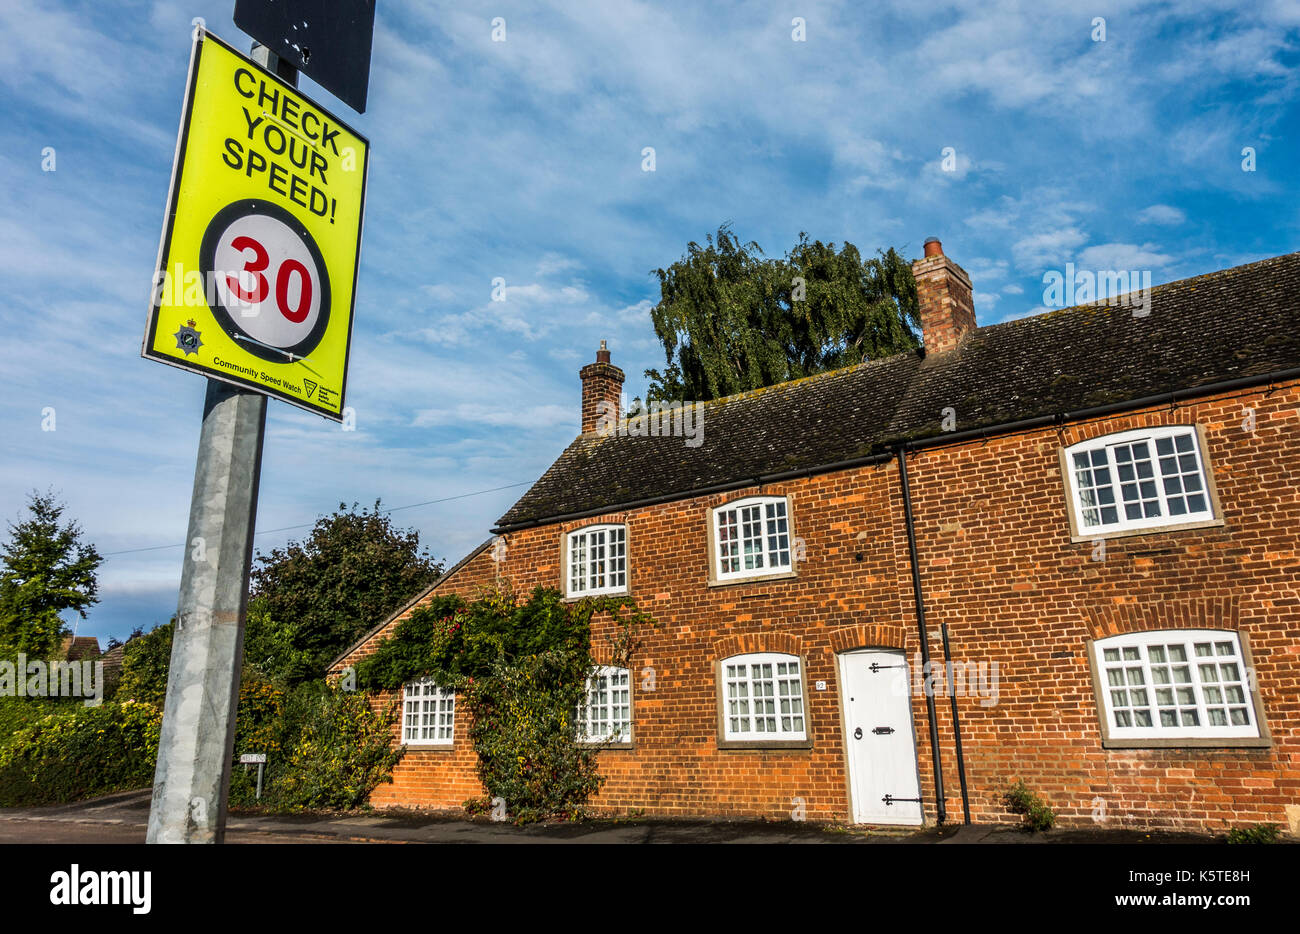 Community Speed Watch 'Check your speed' warning sign on a 30 miles per hour legal limit road, in a built up area of Lincolnshire, England, UK. - Stock Image